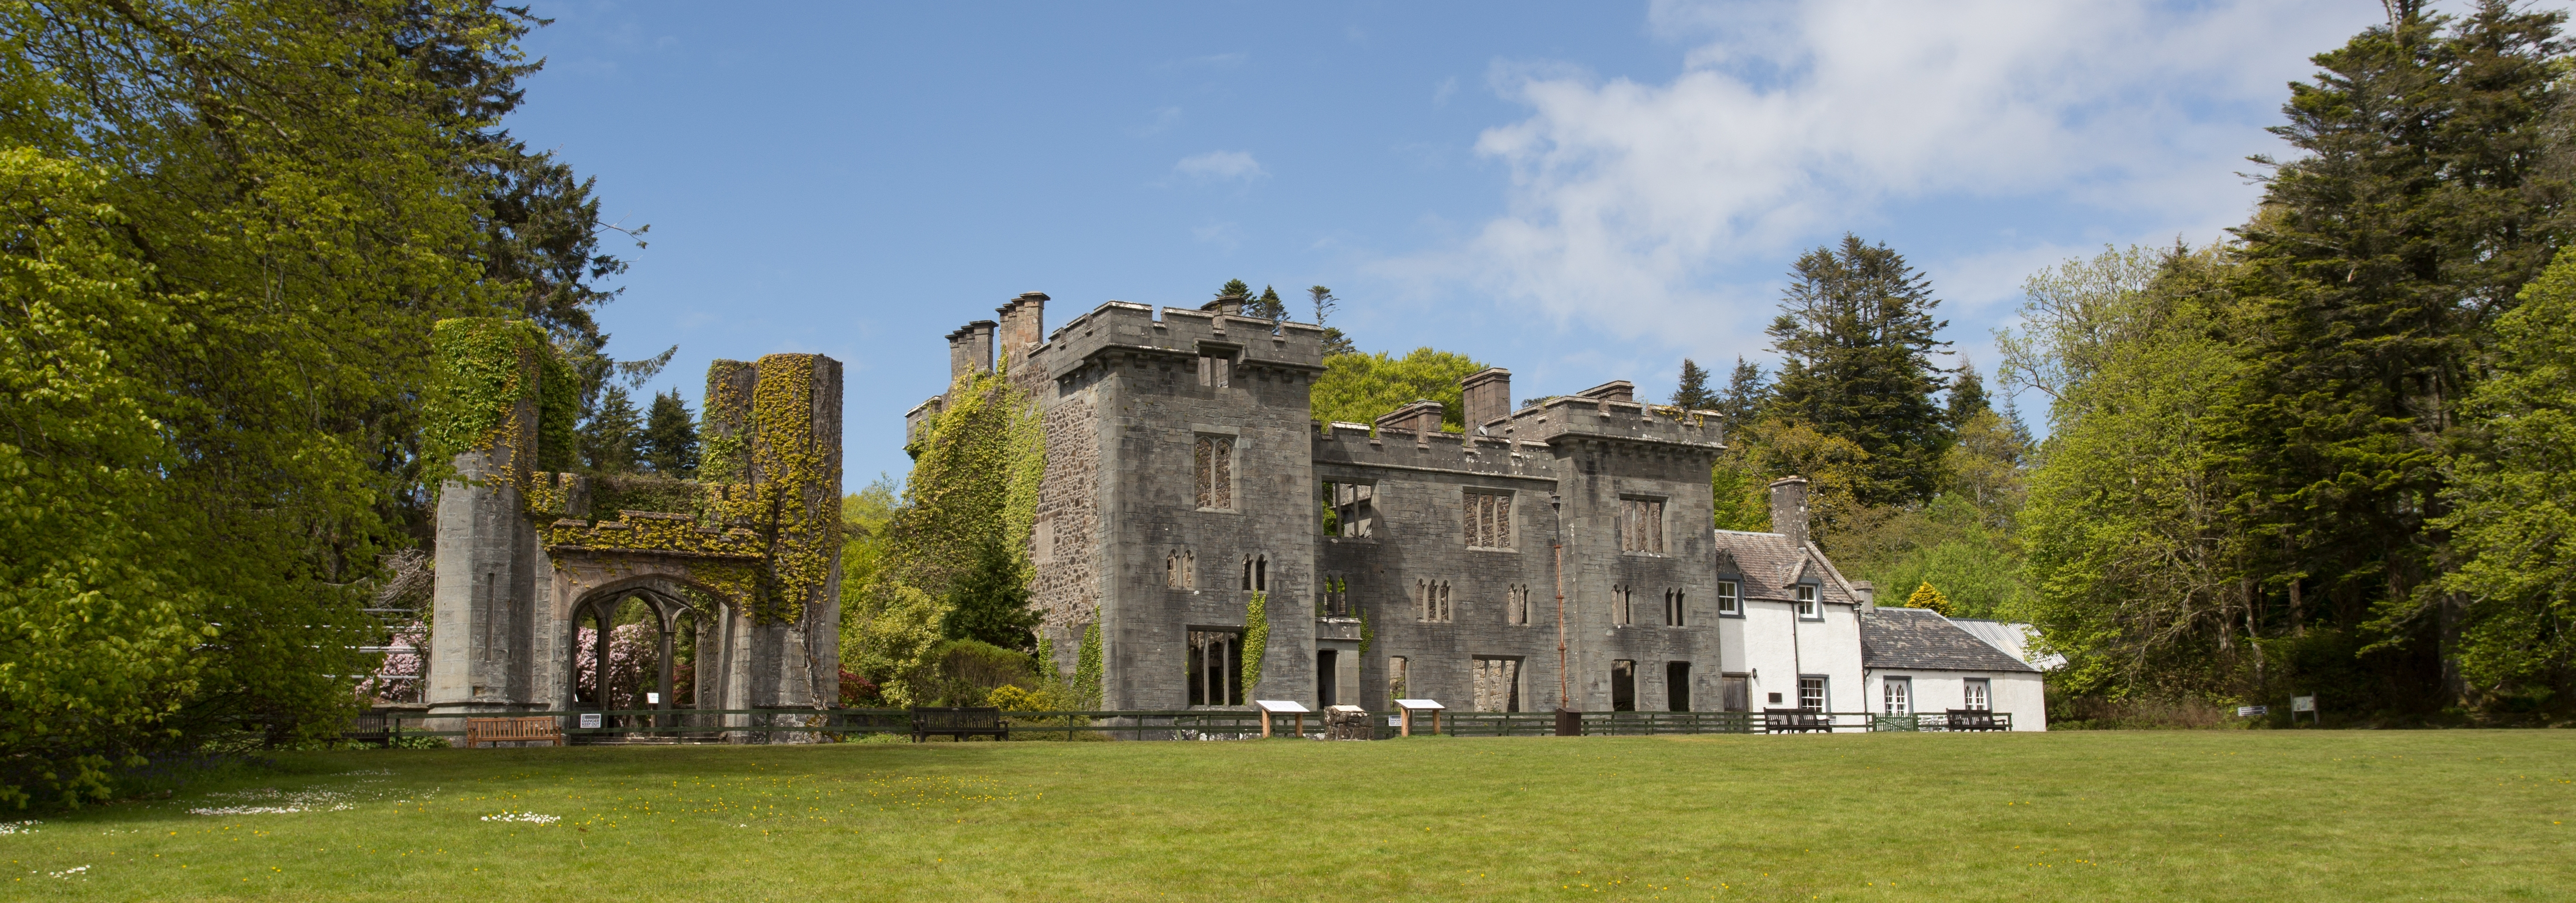 Armadale Castle and Gardens